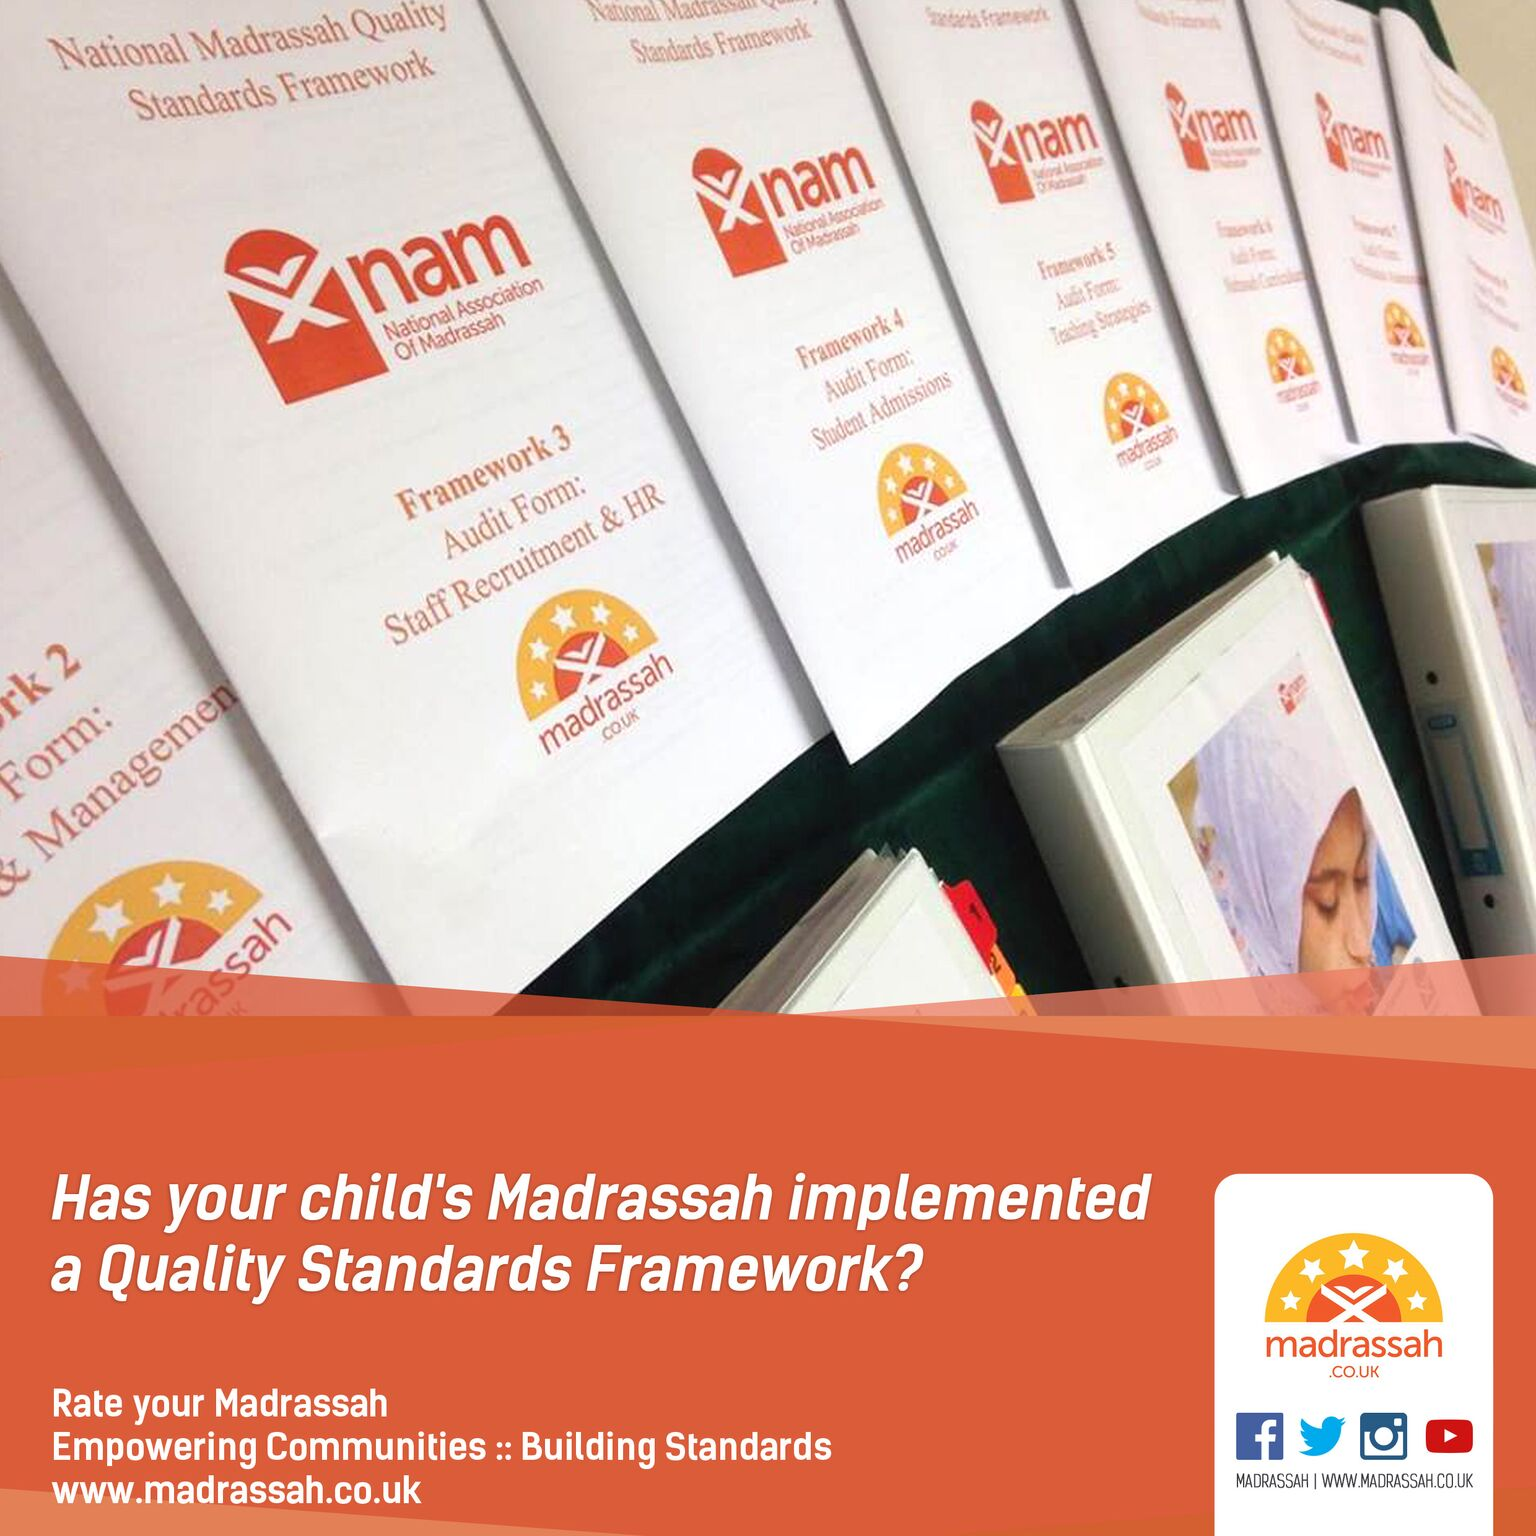 Has your child's madrassah implemented a Quality Standards Framework